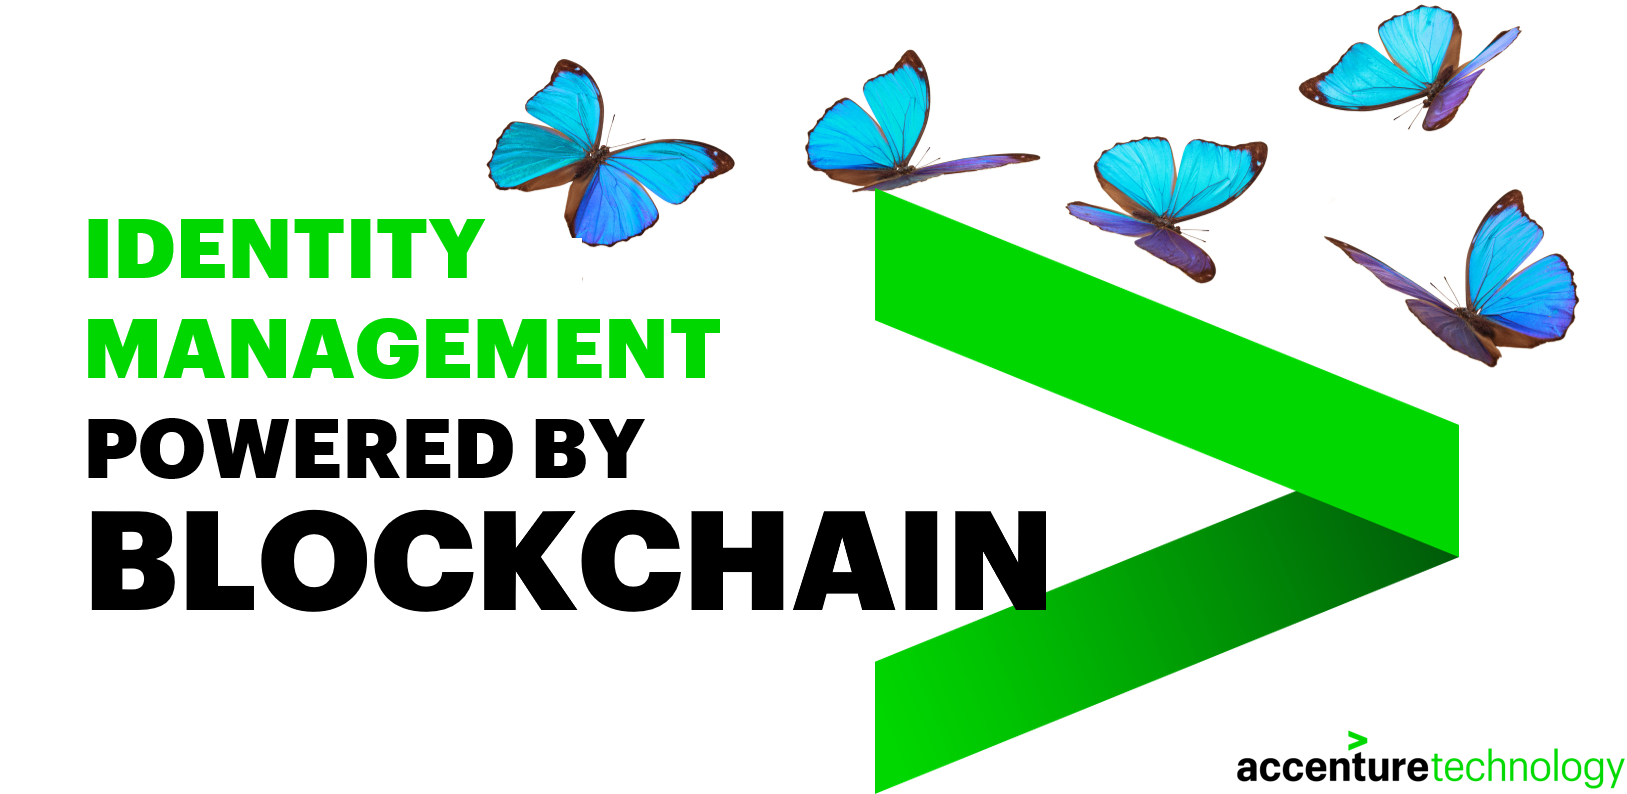 Identity Managment Powered by Blockchain - by Accenture